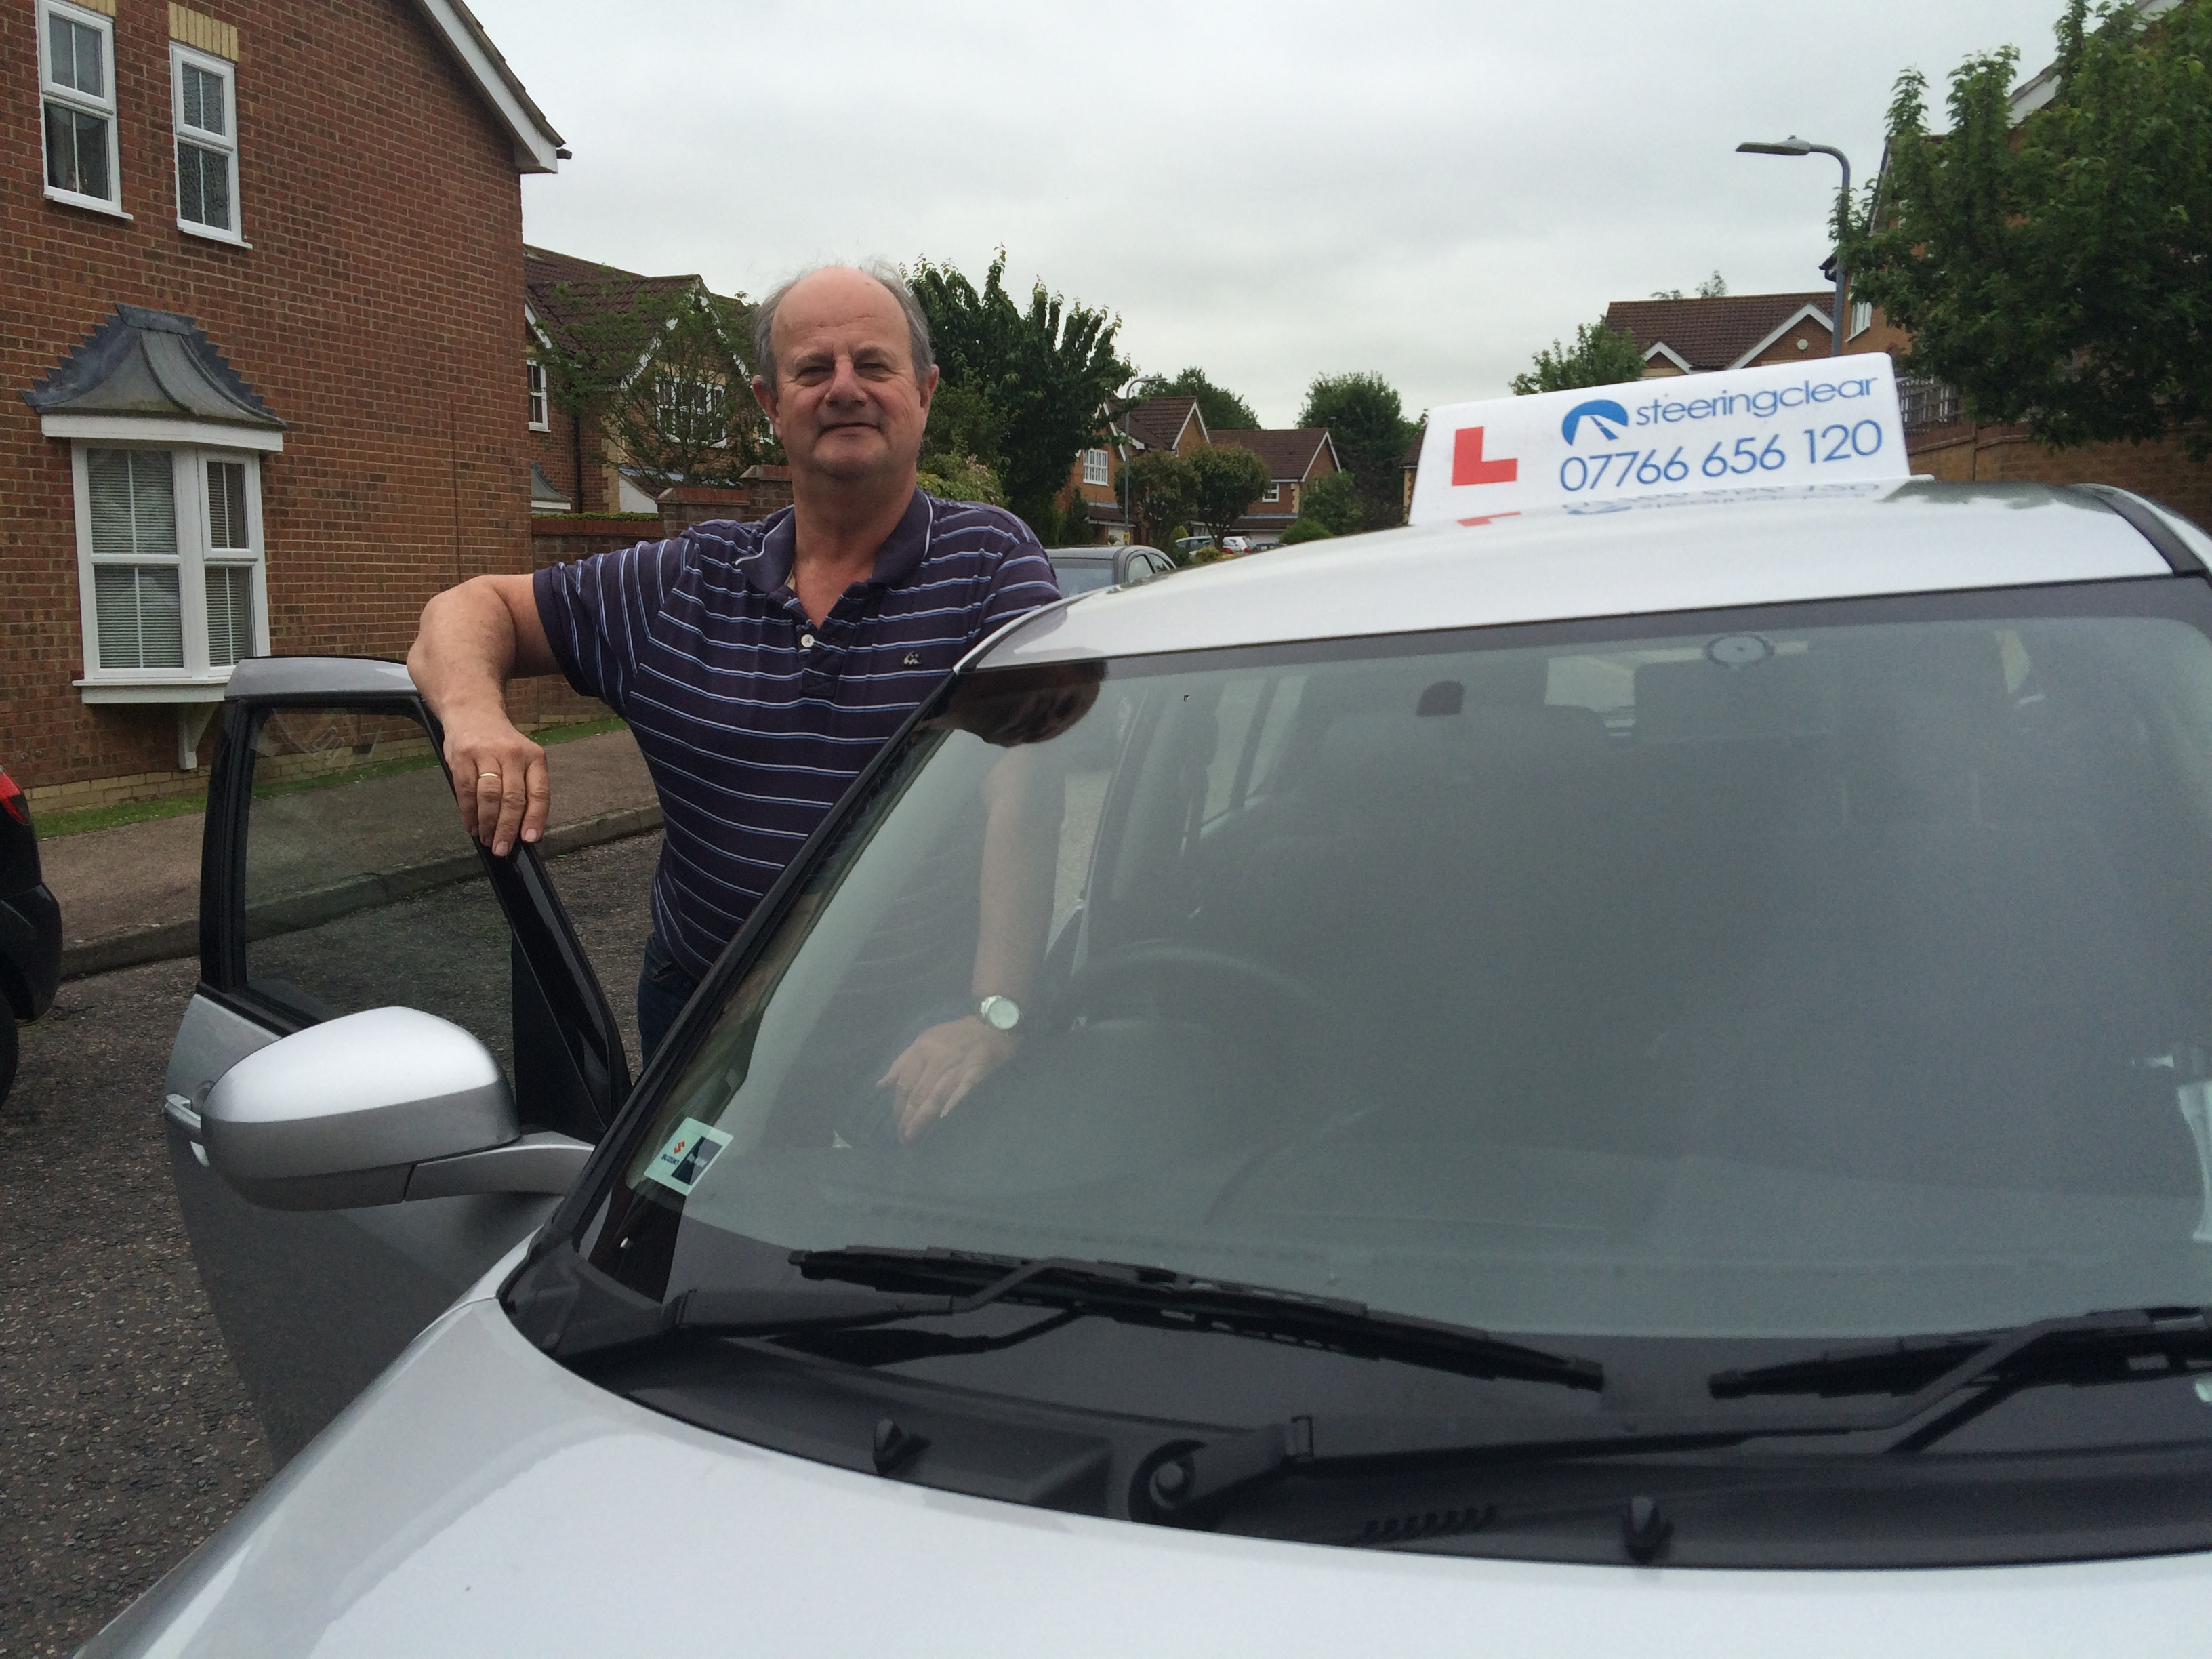 Mike Walling - Brighton Driving Instructor for Steering Clear